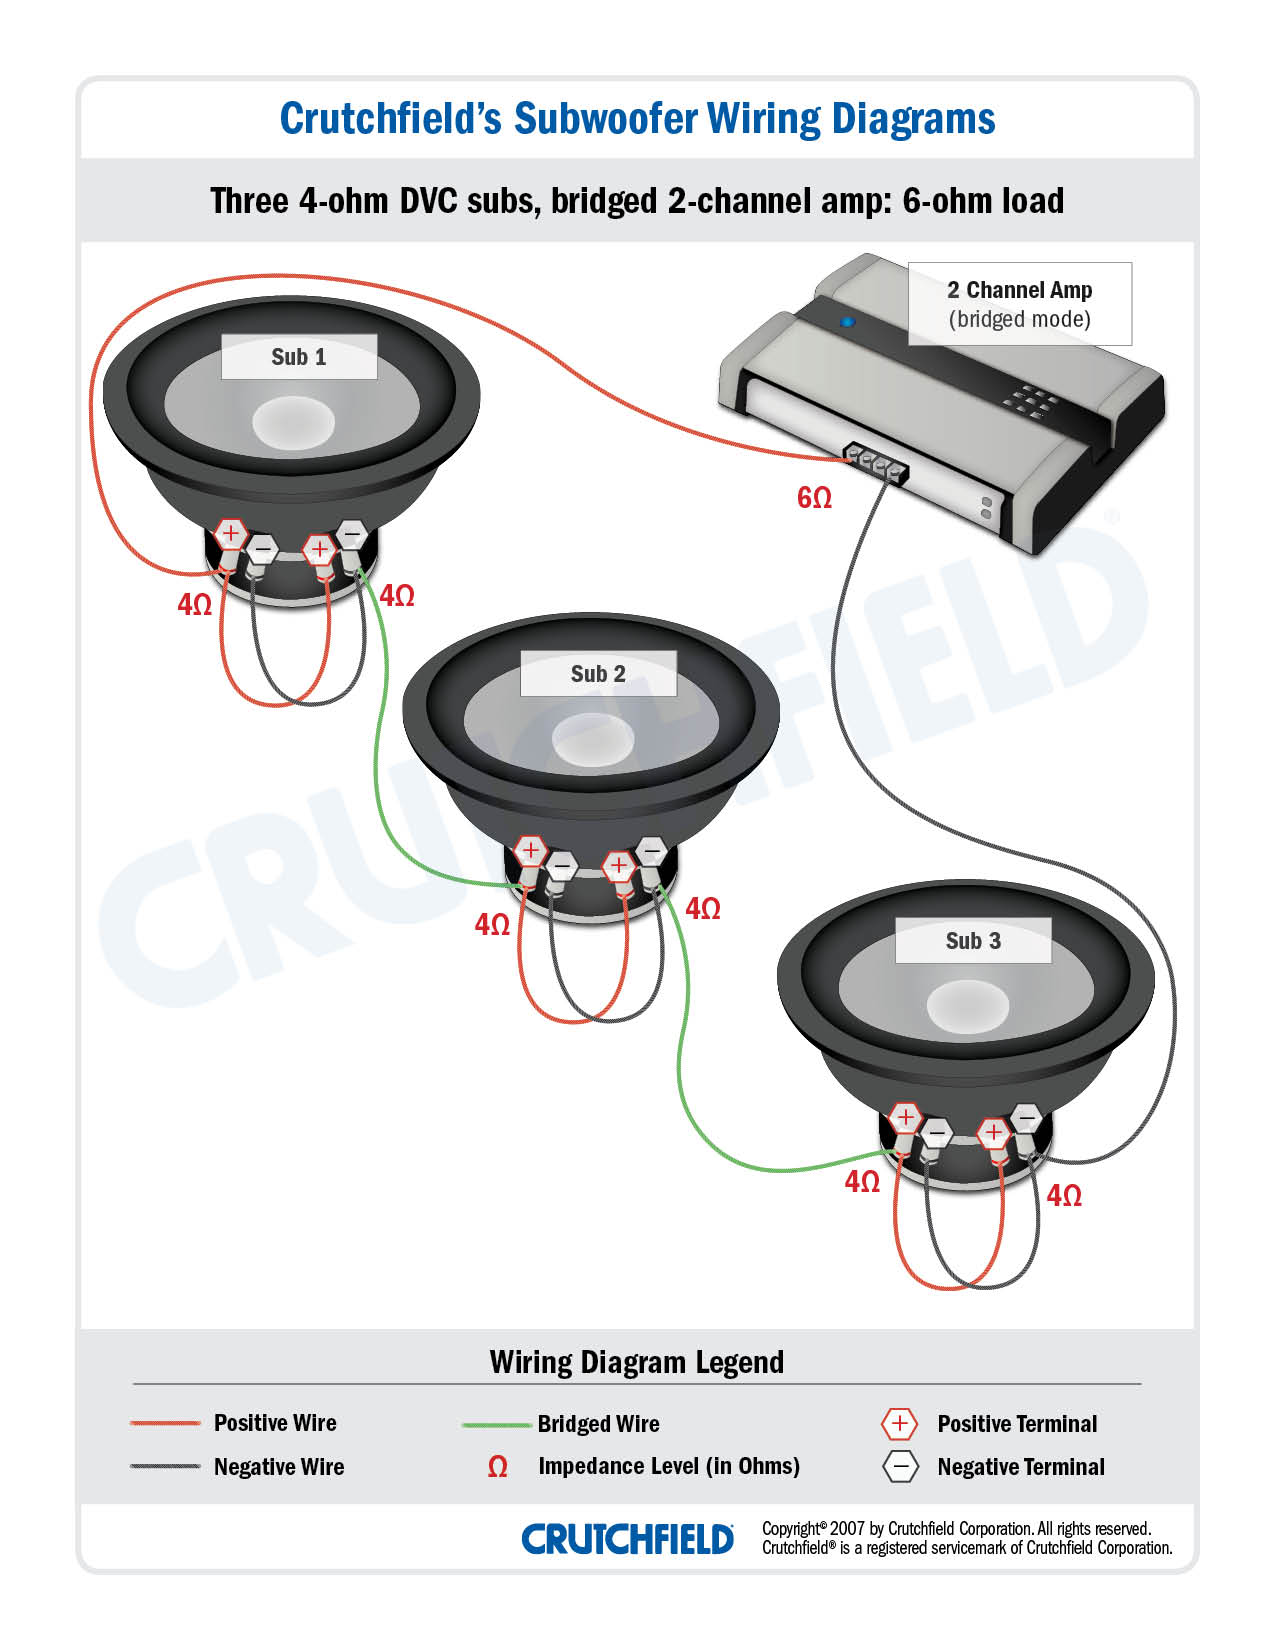 3 DVC 4 ohm 2 ch subwoofer wiring diagrams kicker l5 12 wiring diagram at virtualis.co